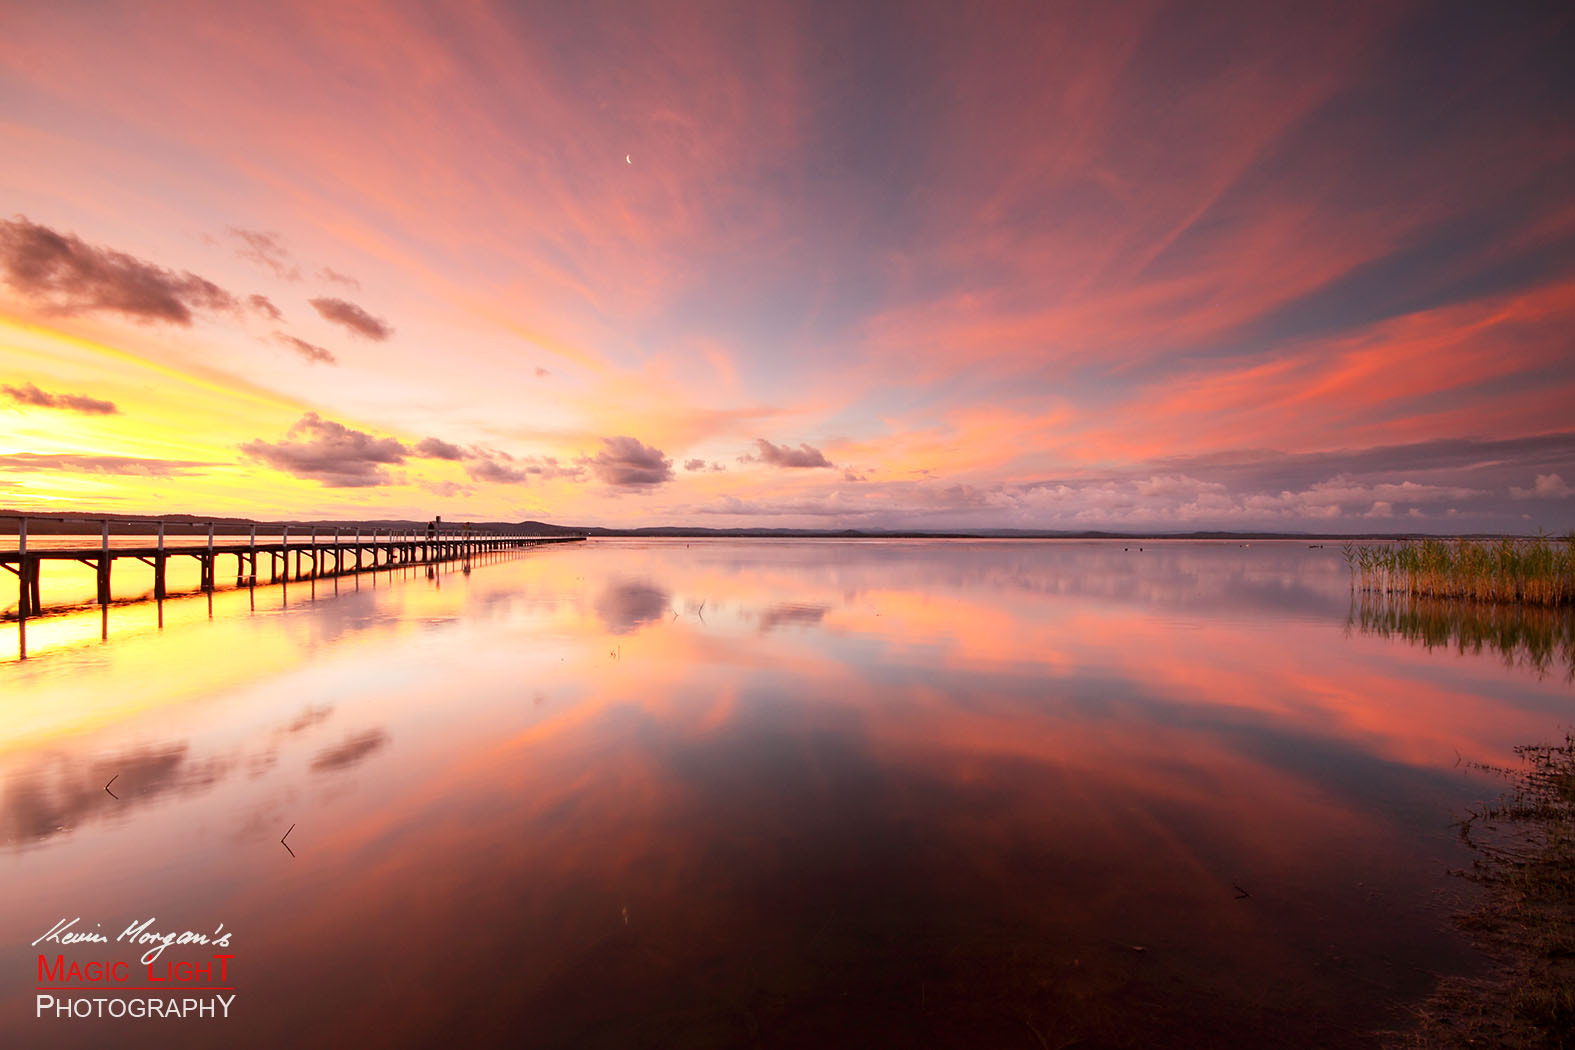 Photograph Sunset Reflections at Long Jetty by Kevin Morgan on 500px